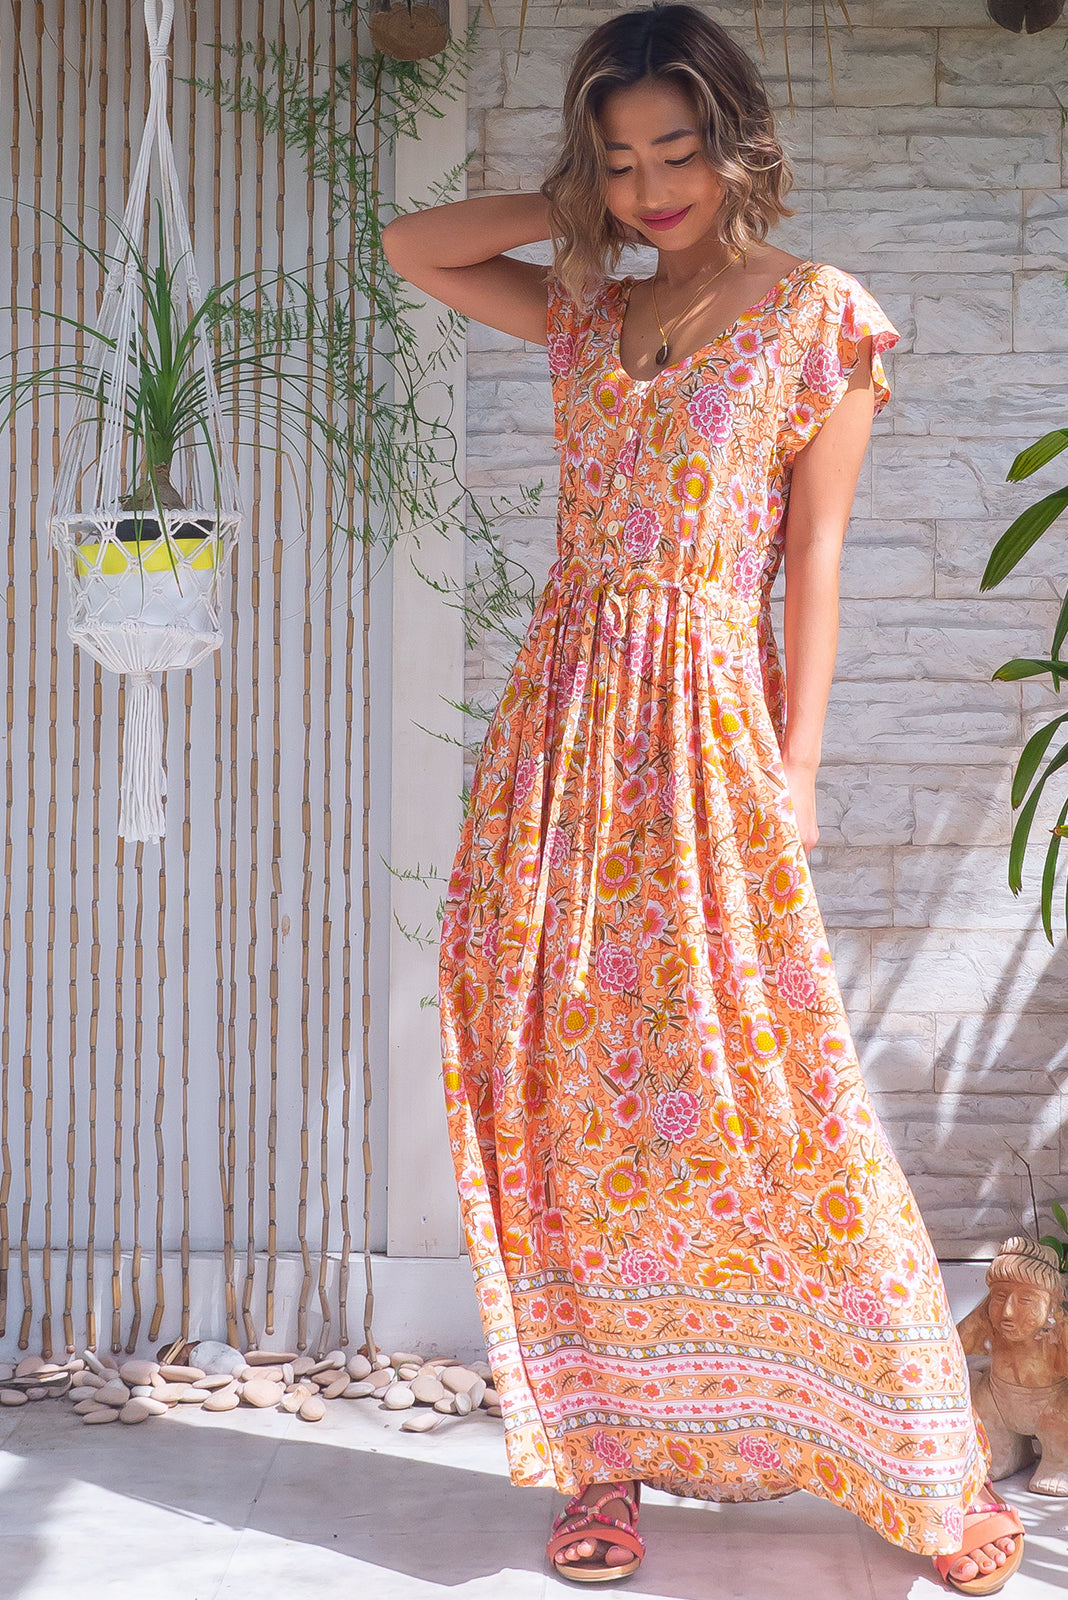 The Juniper Peach Sandrine Maxi Dress features functional button down detailing to waistline, side pockets, adjustable drawstring waist, border feature and 100% viscose in pale orange base with vintage floral print.